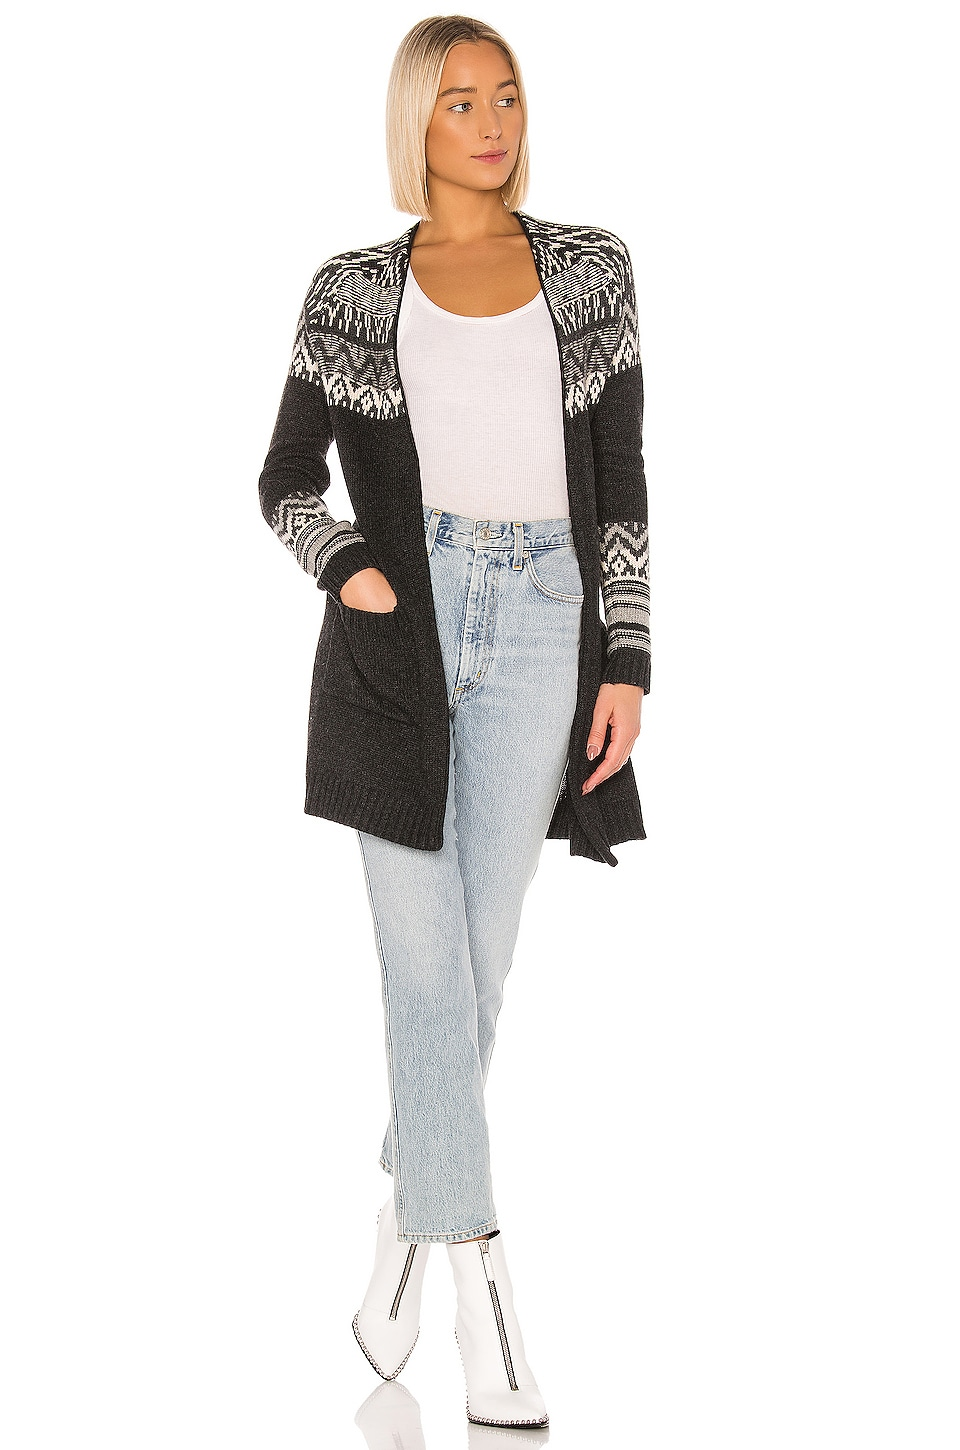 Bailey 44 Adelia Cardigan in Anthracite